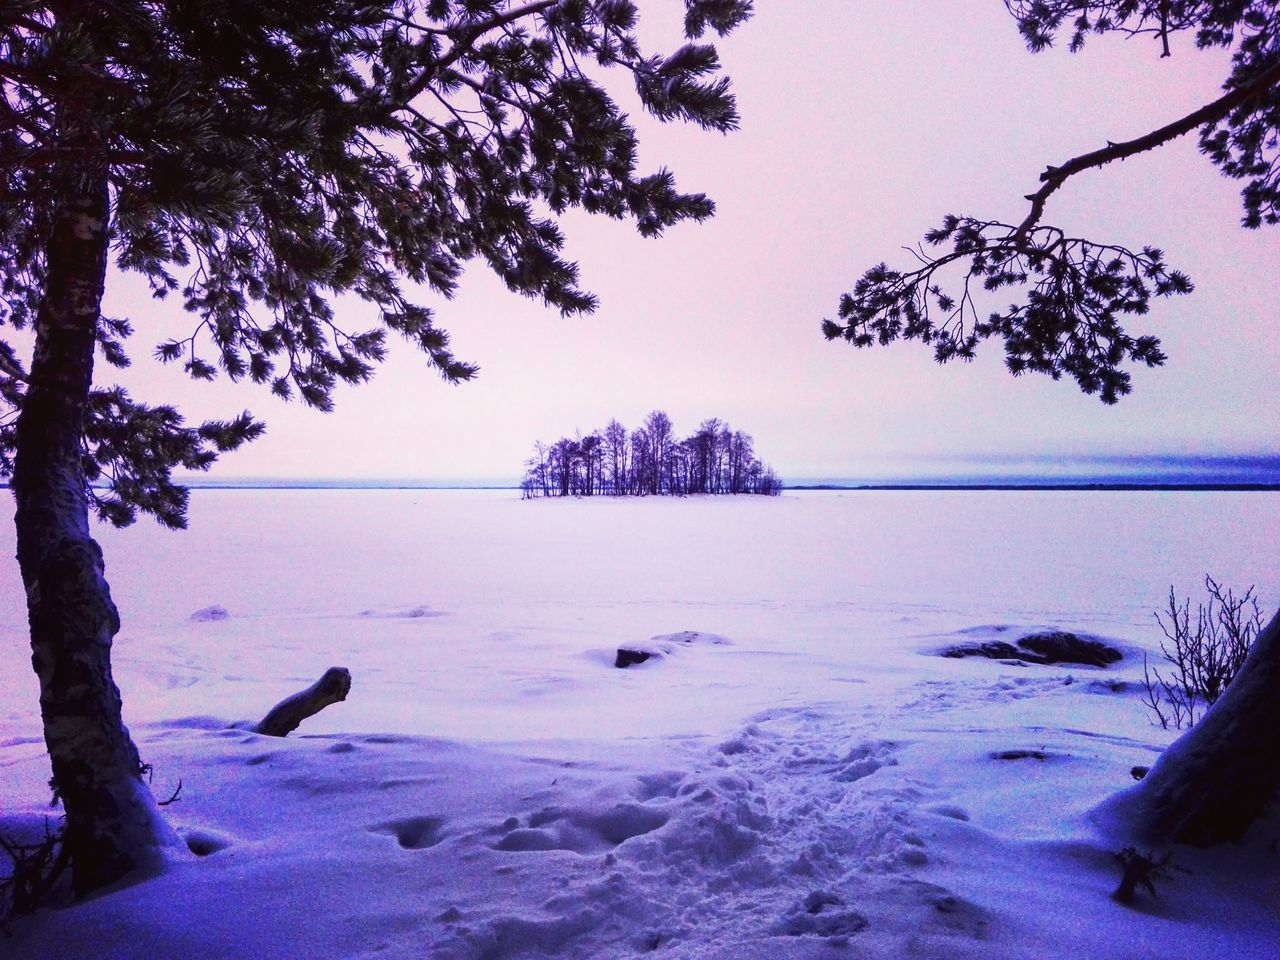 Daytime Nature Beauty In Nature Outdoors Winter Landscape Naturelovers Lake View Snow ❄ Winter Landscape Wintertime Landscape_photography Finnish Nature Nature Photography Photography Photographer Cloudscape Lake Weather Beauty In Nature